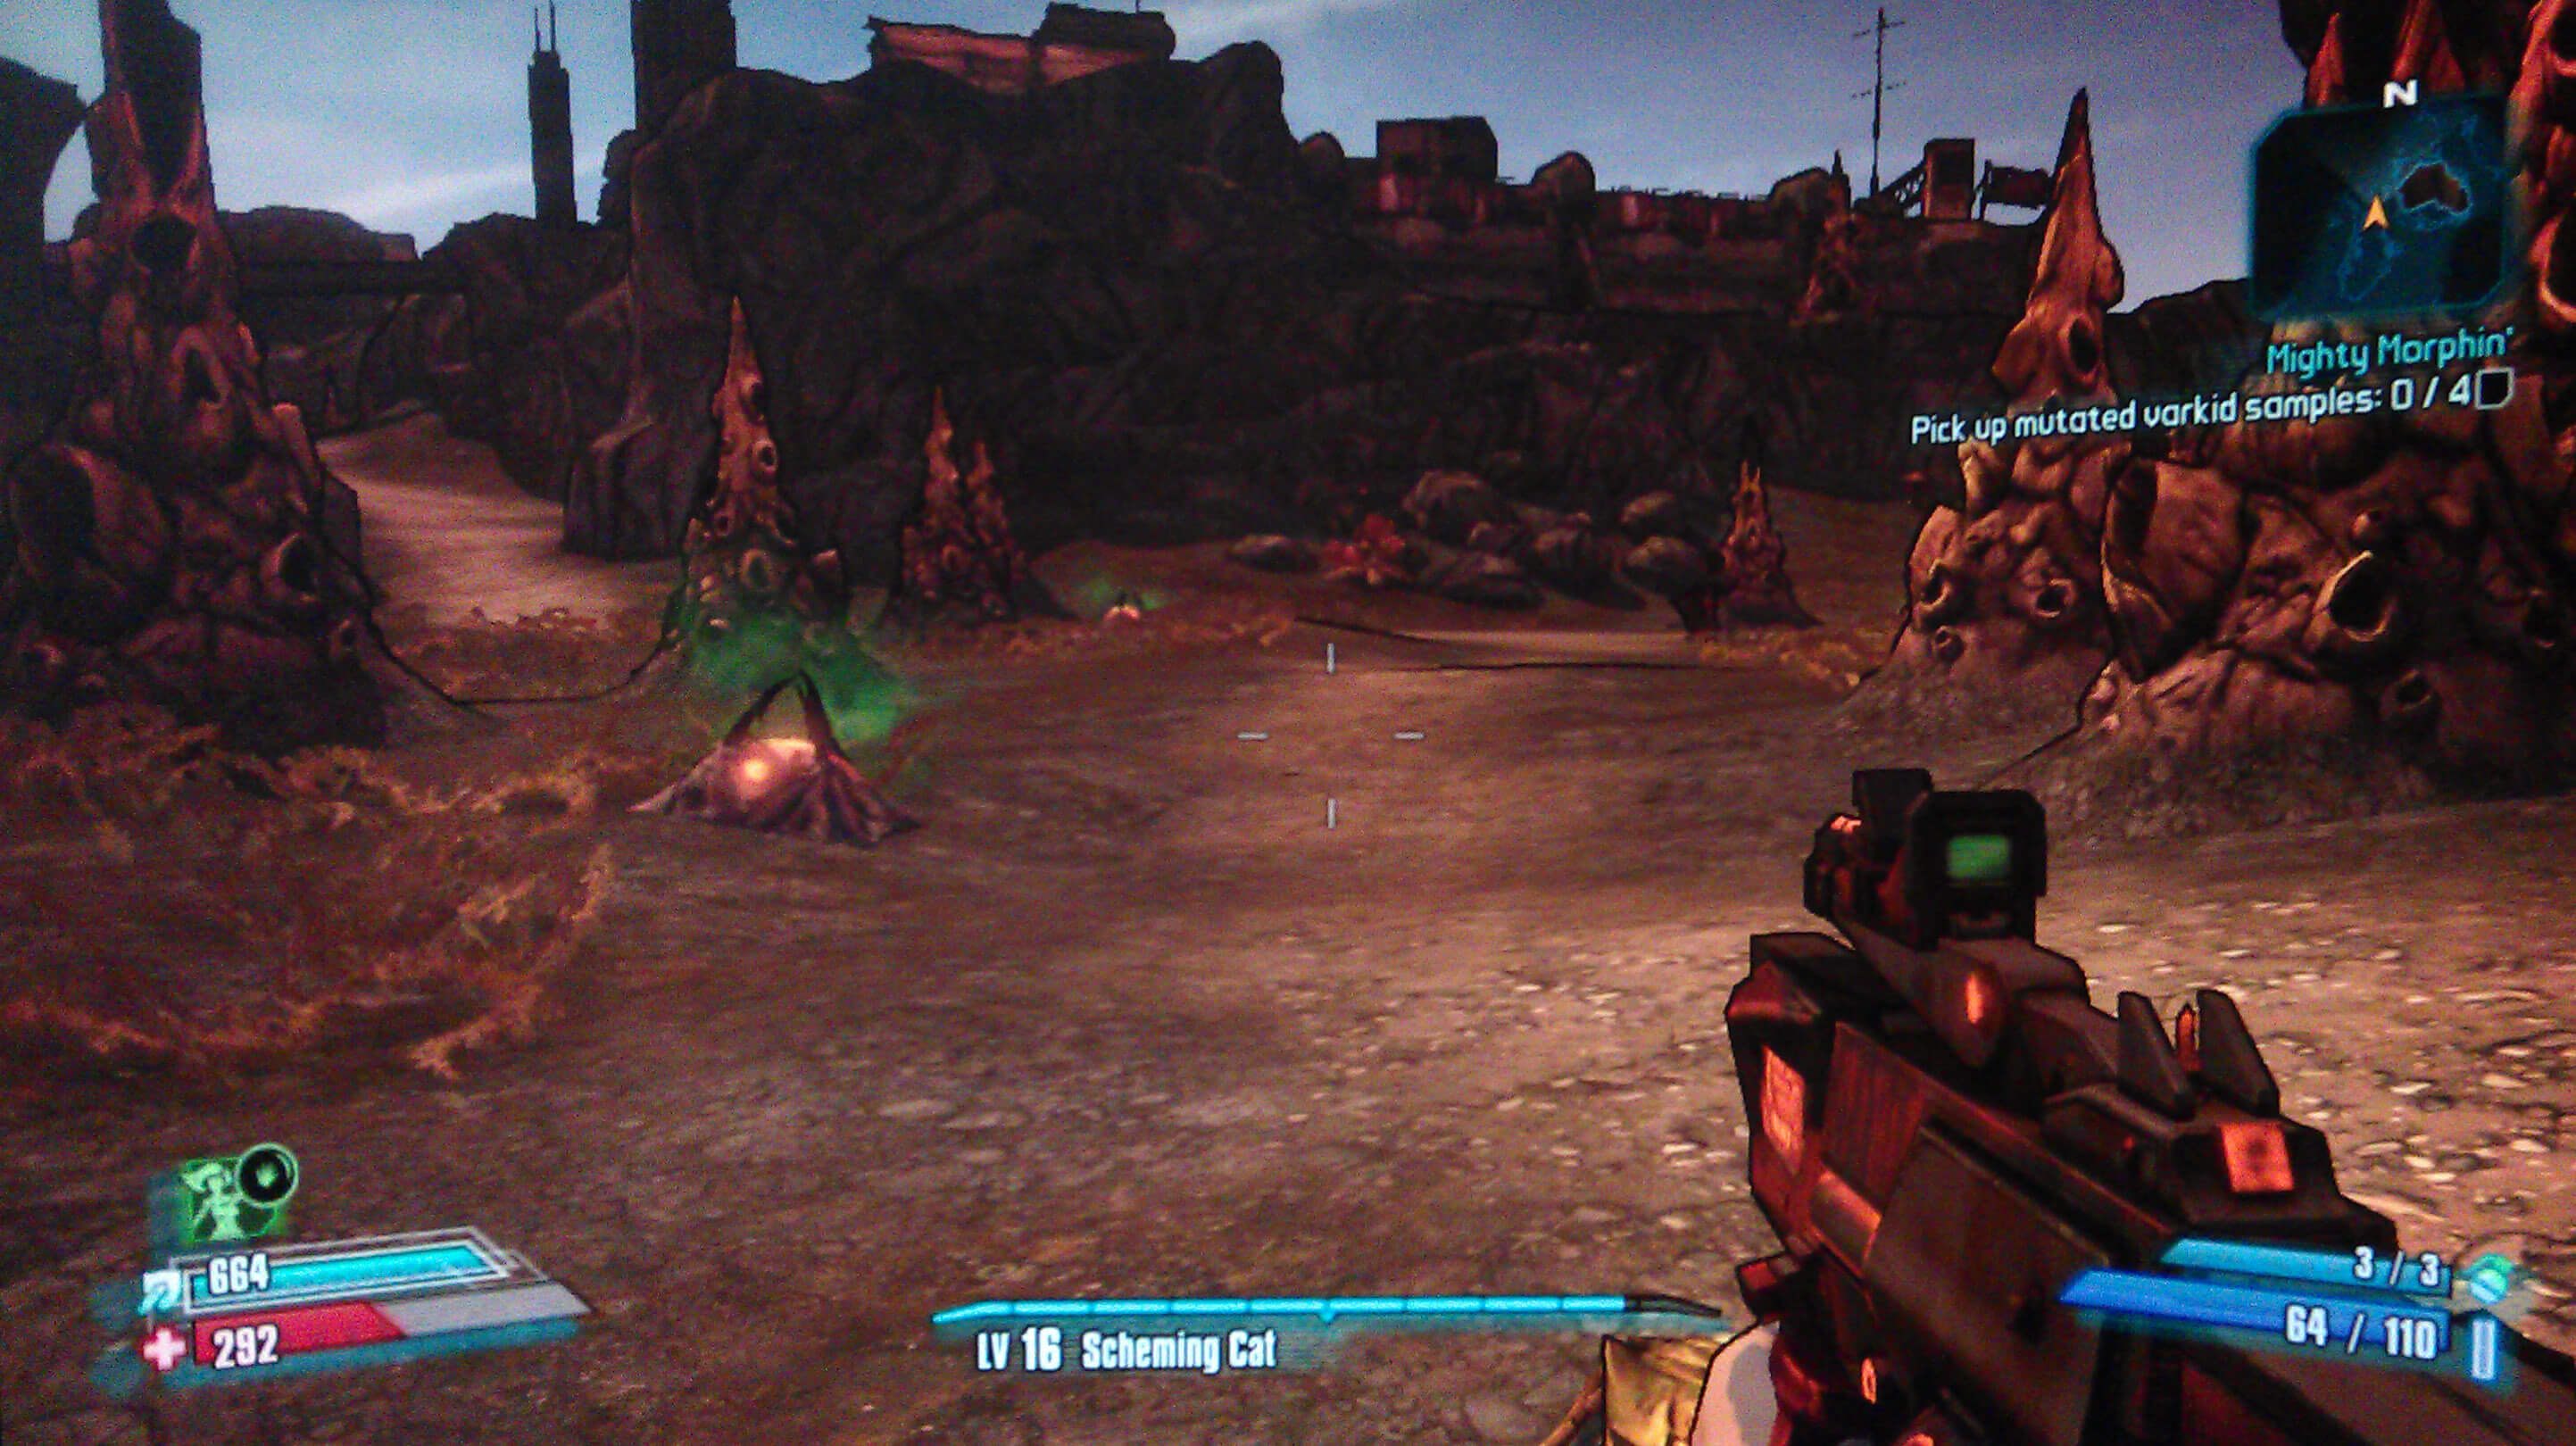 Borderlands 2 Mighty Morphin' Walkthrough